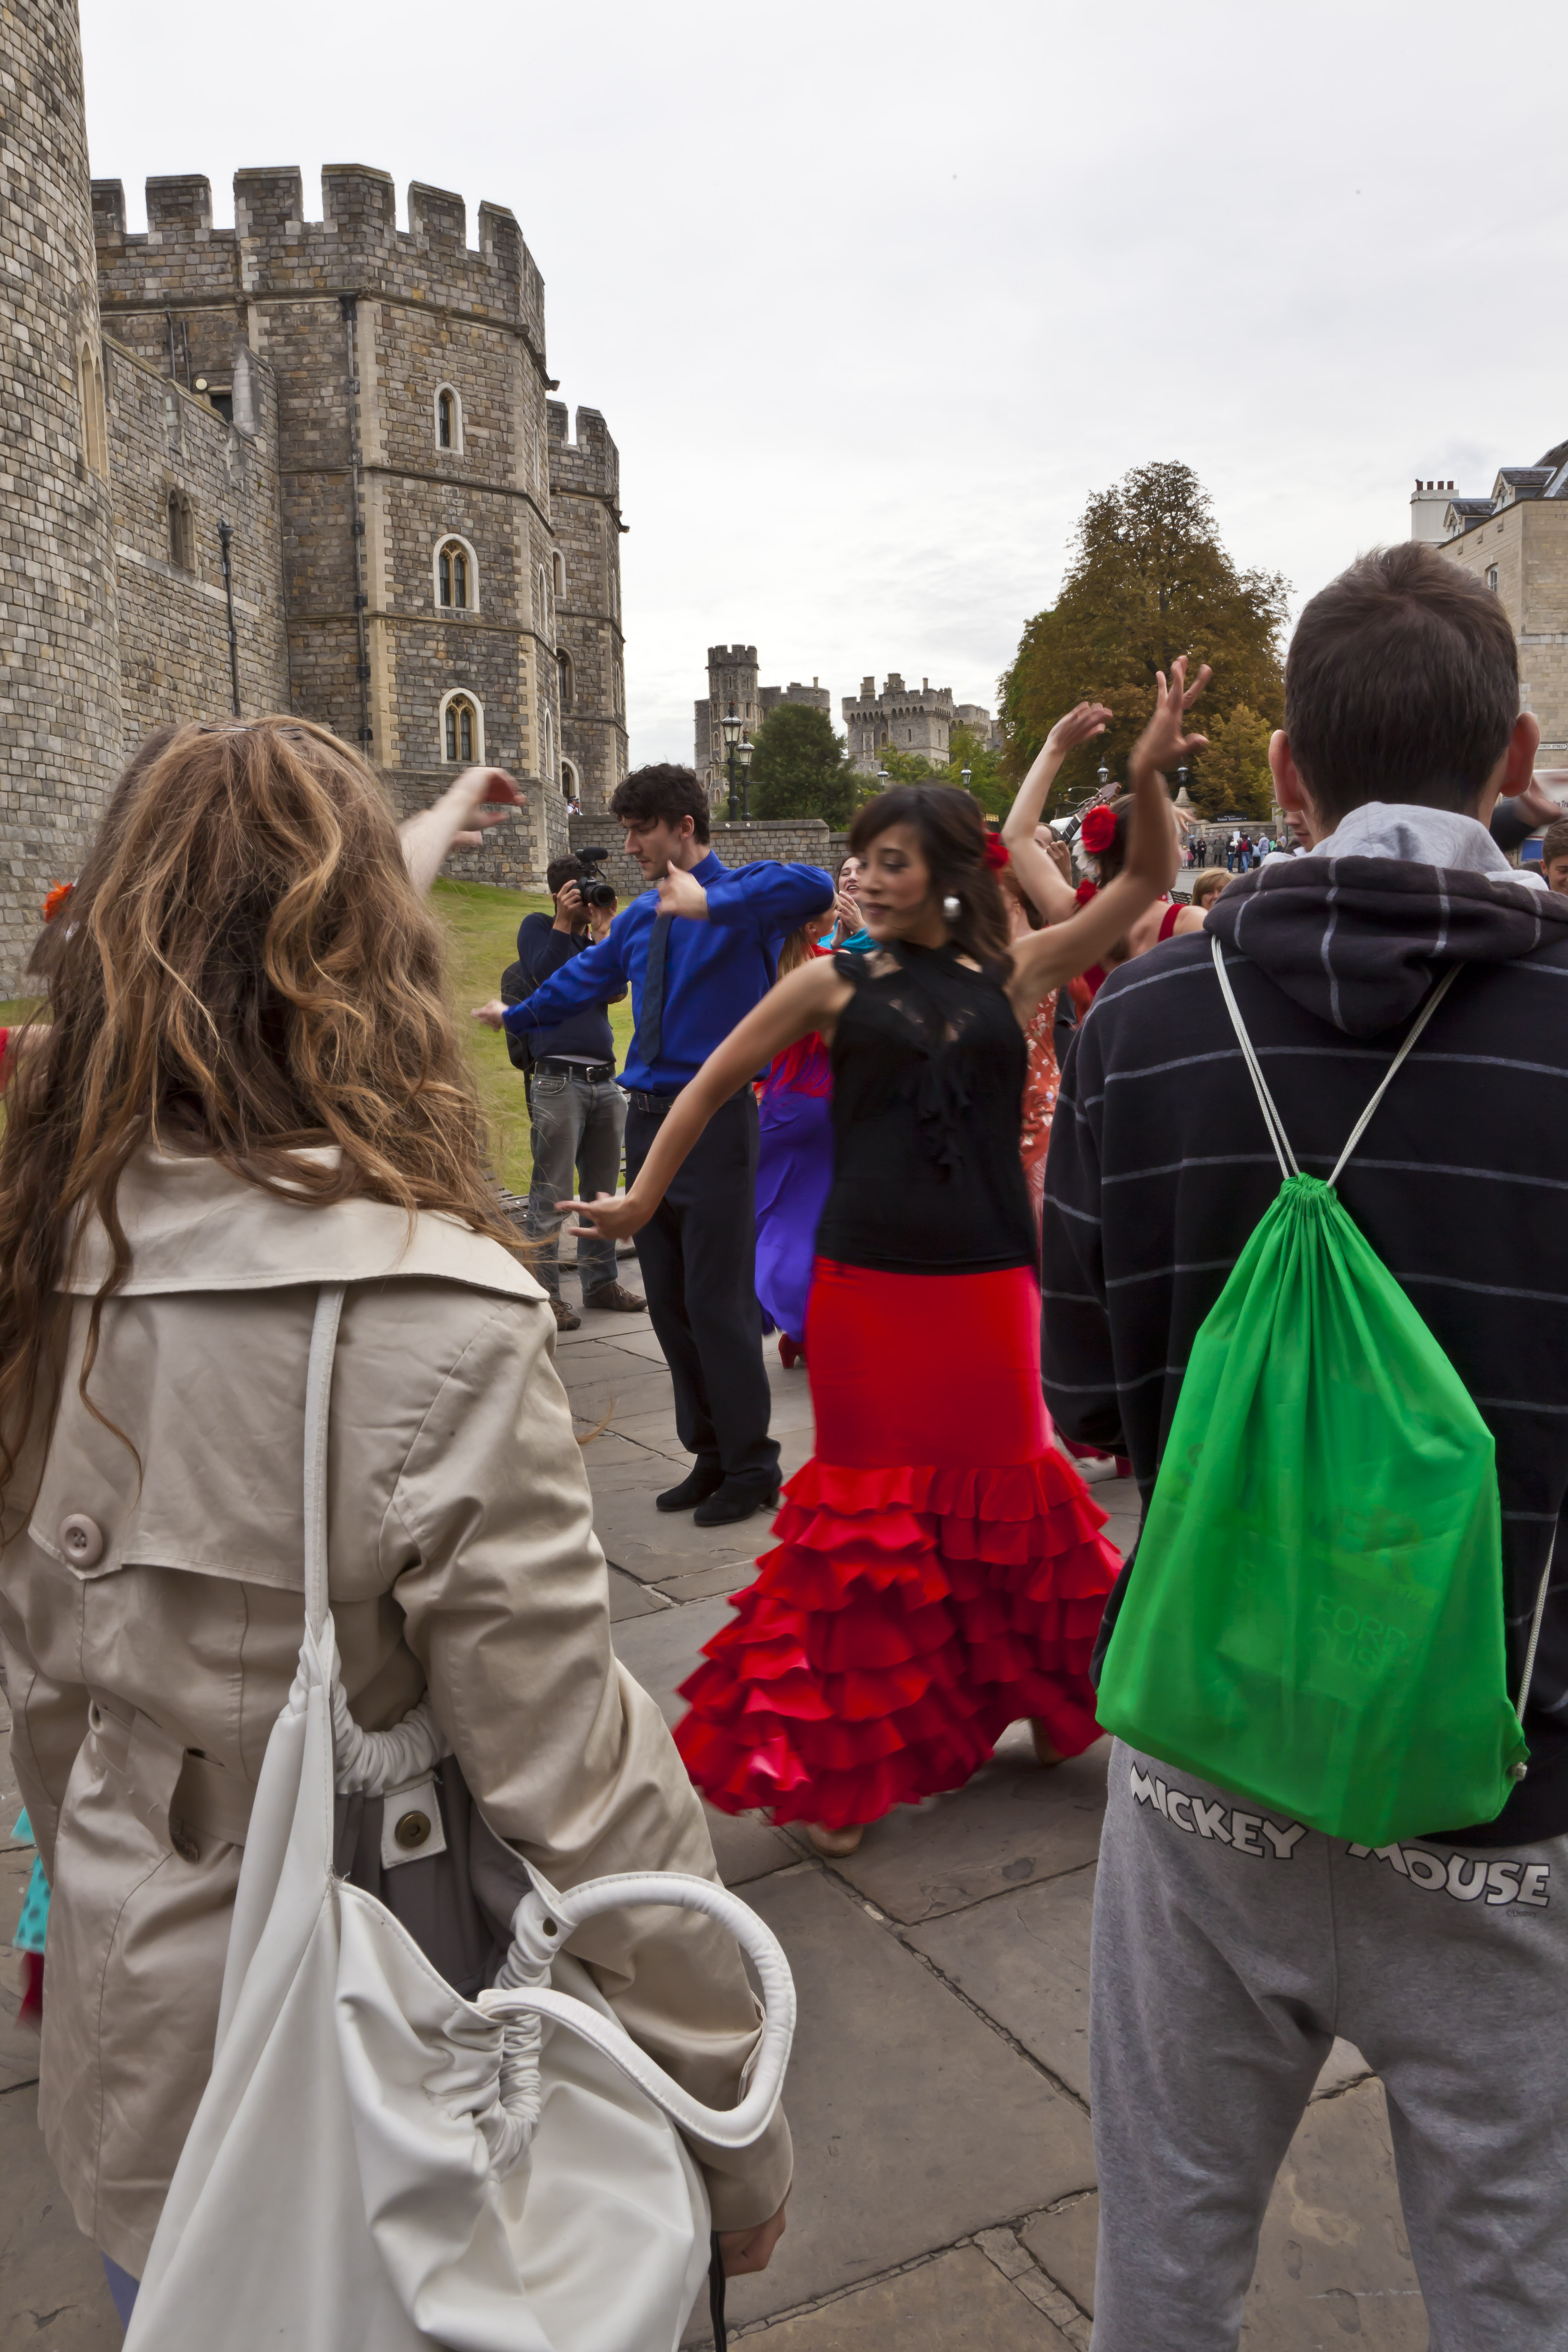 Flashmob by the castle